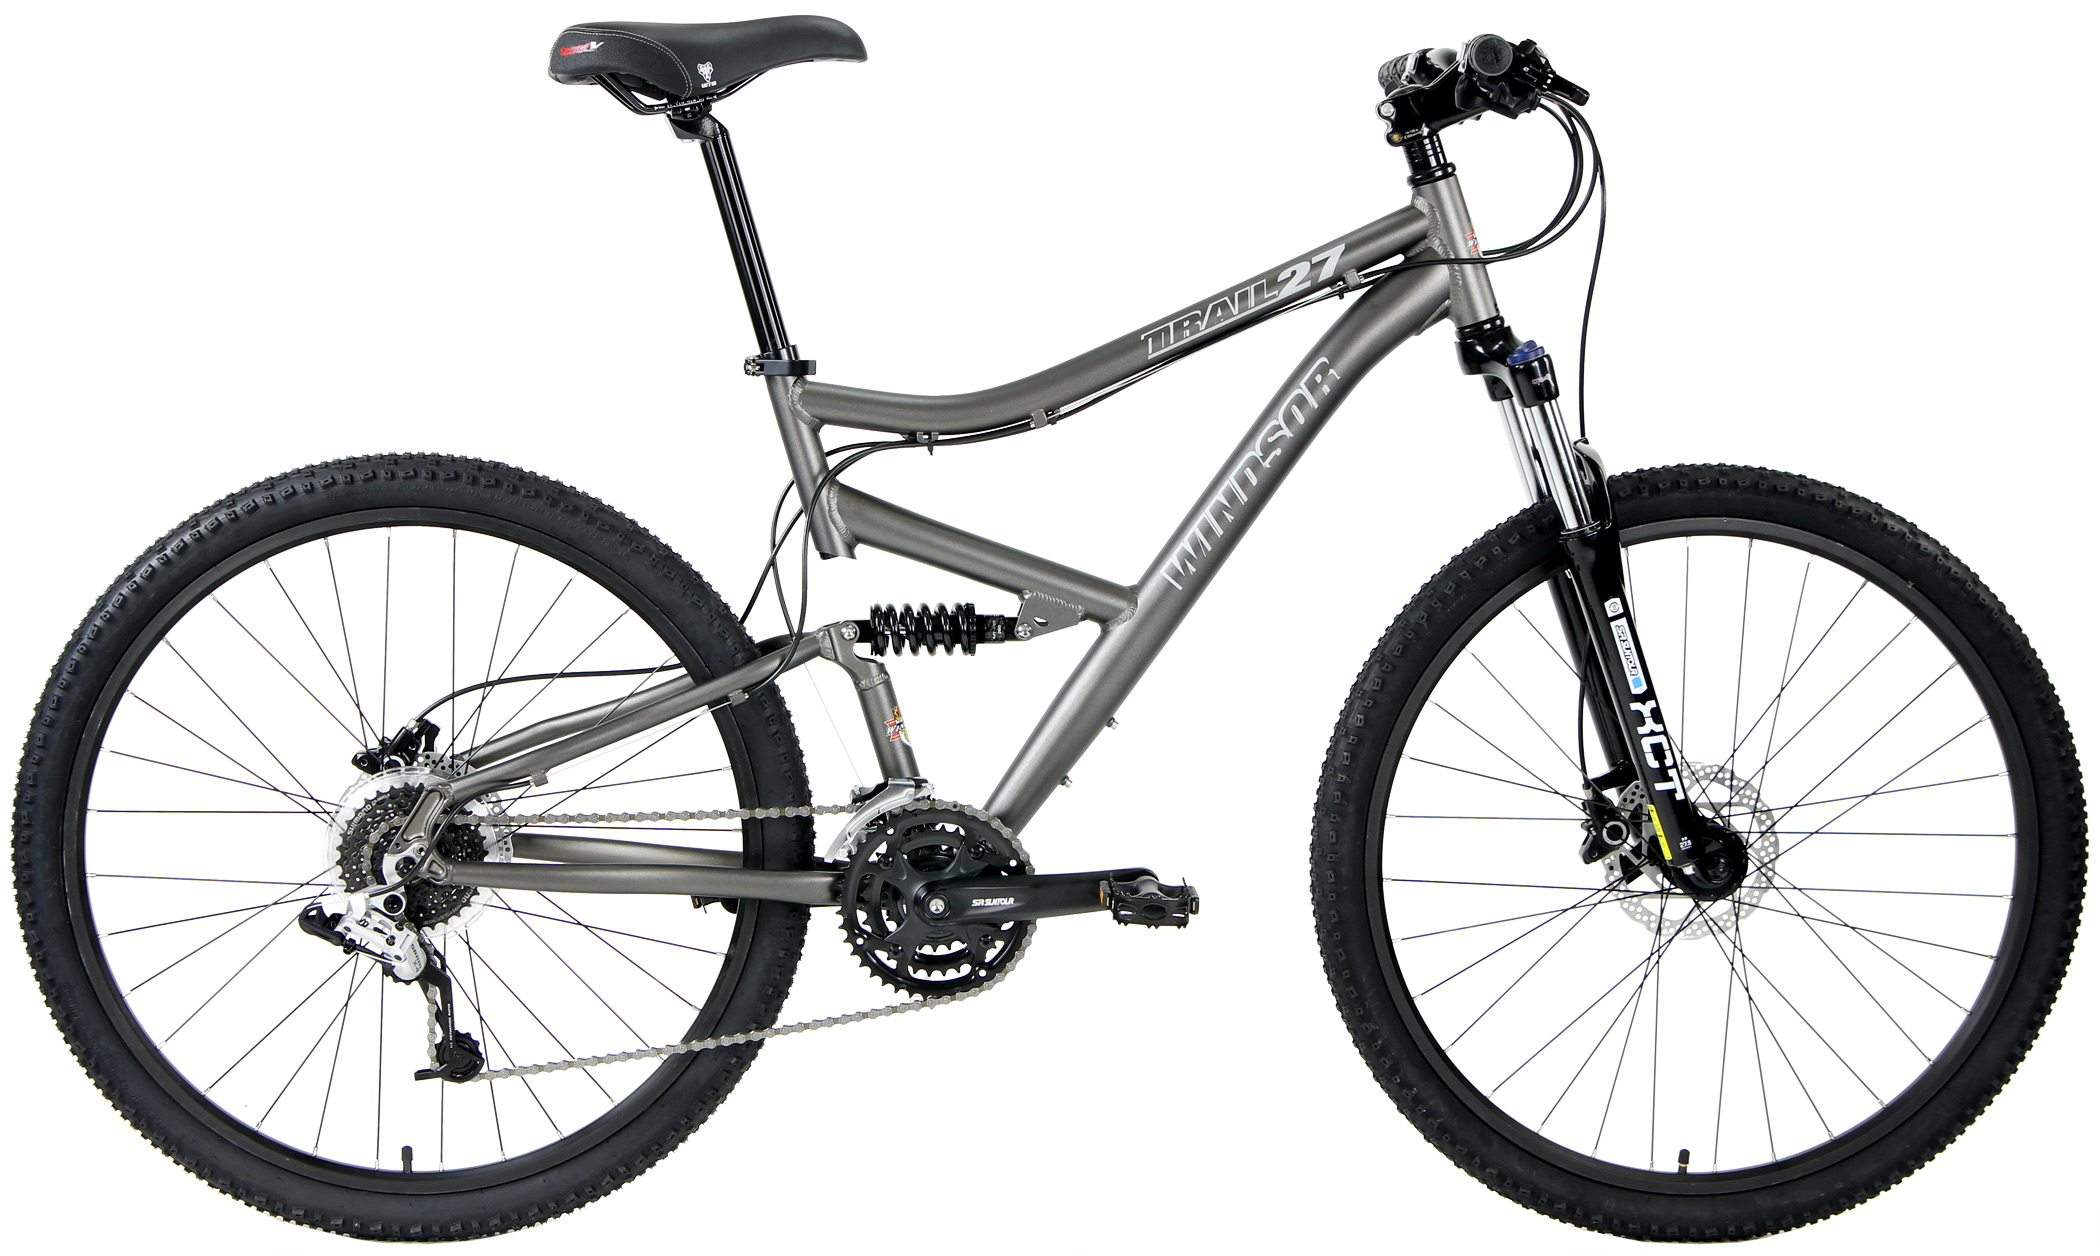 TRAIL 27 COMP - 27.5 FULL SUSPENSION w/ HYDRAULIC DISC BRAKES